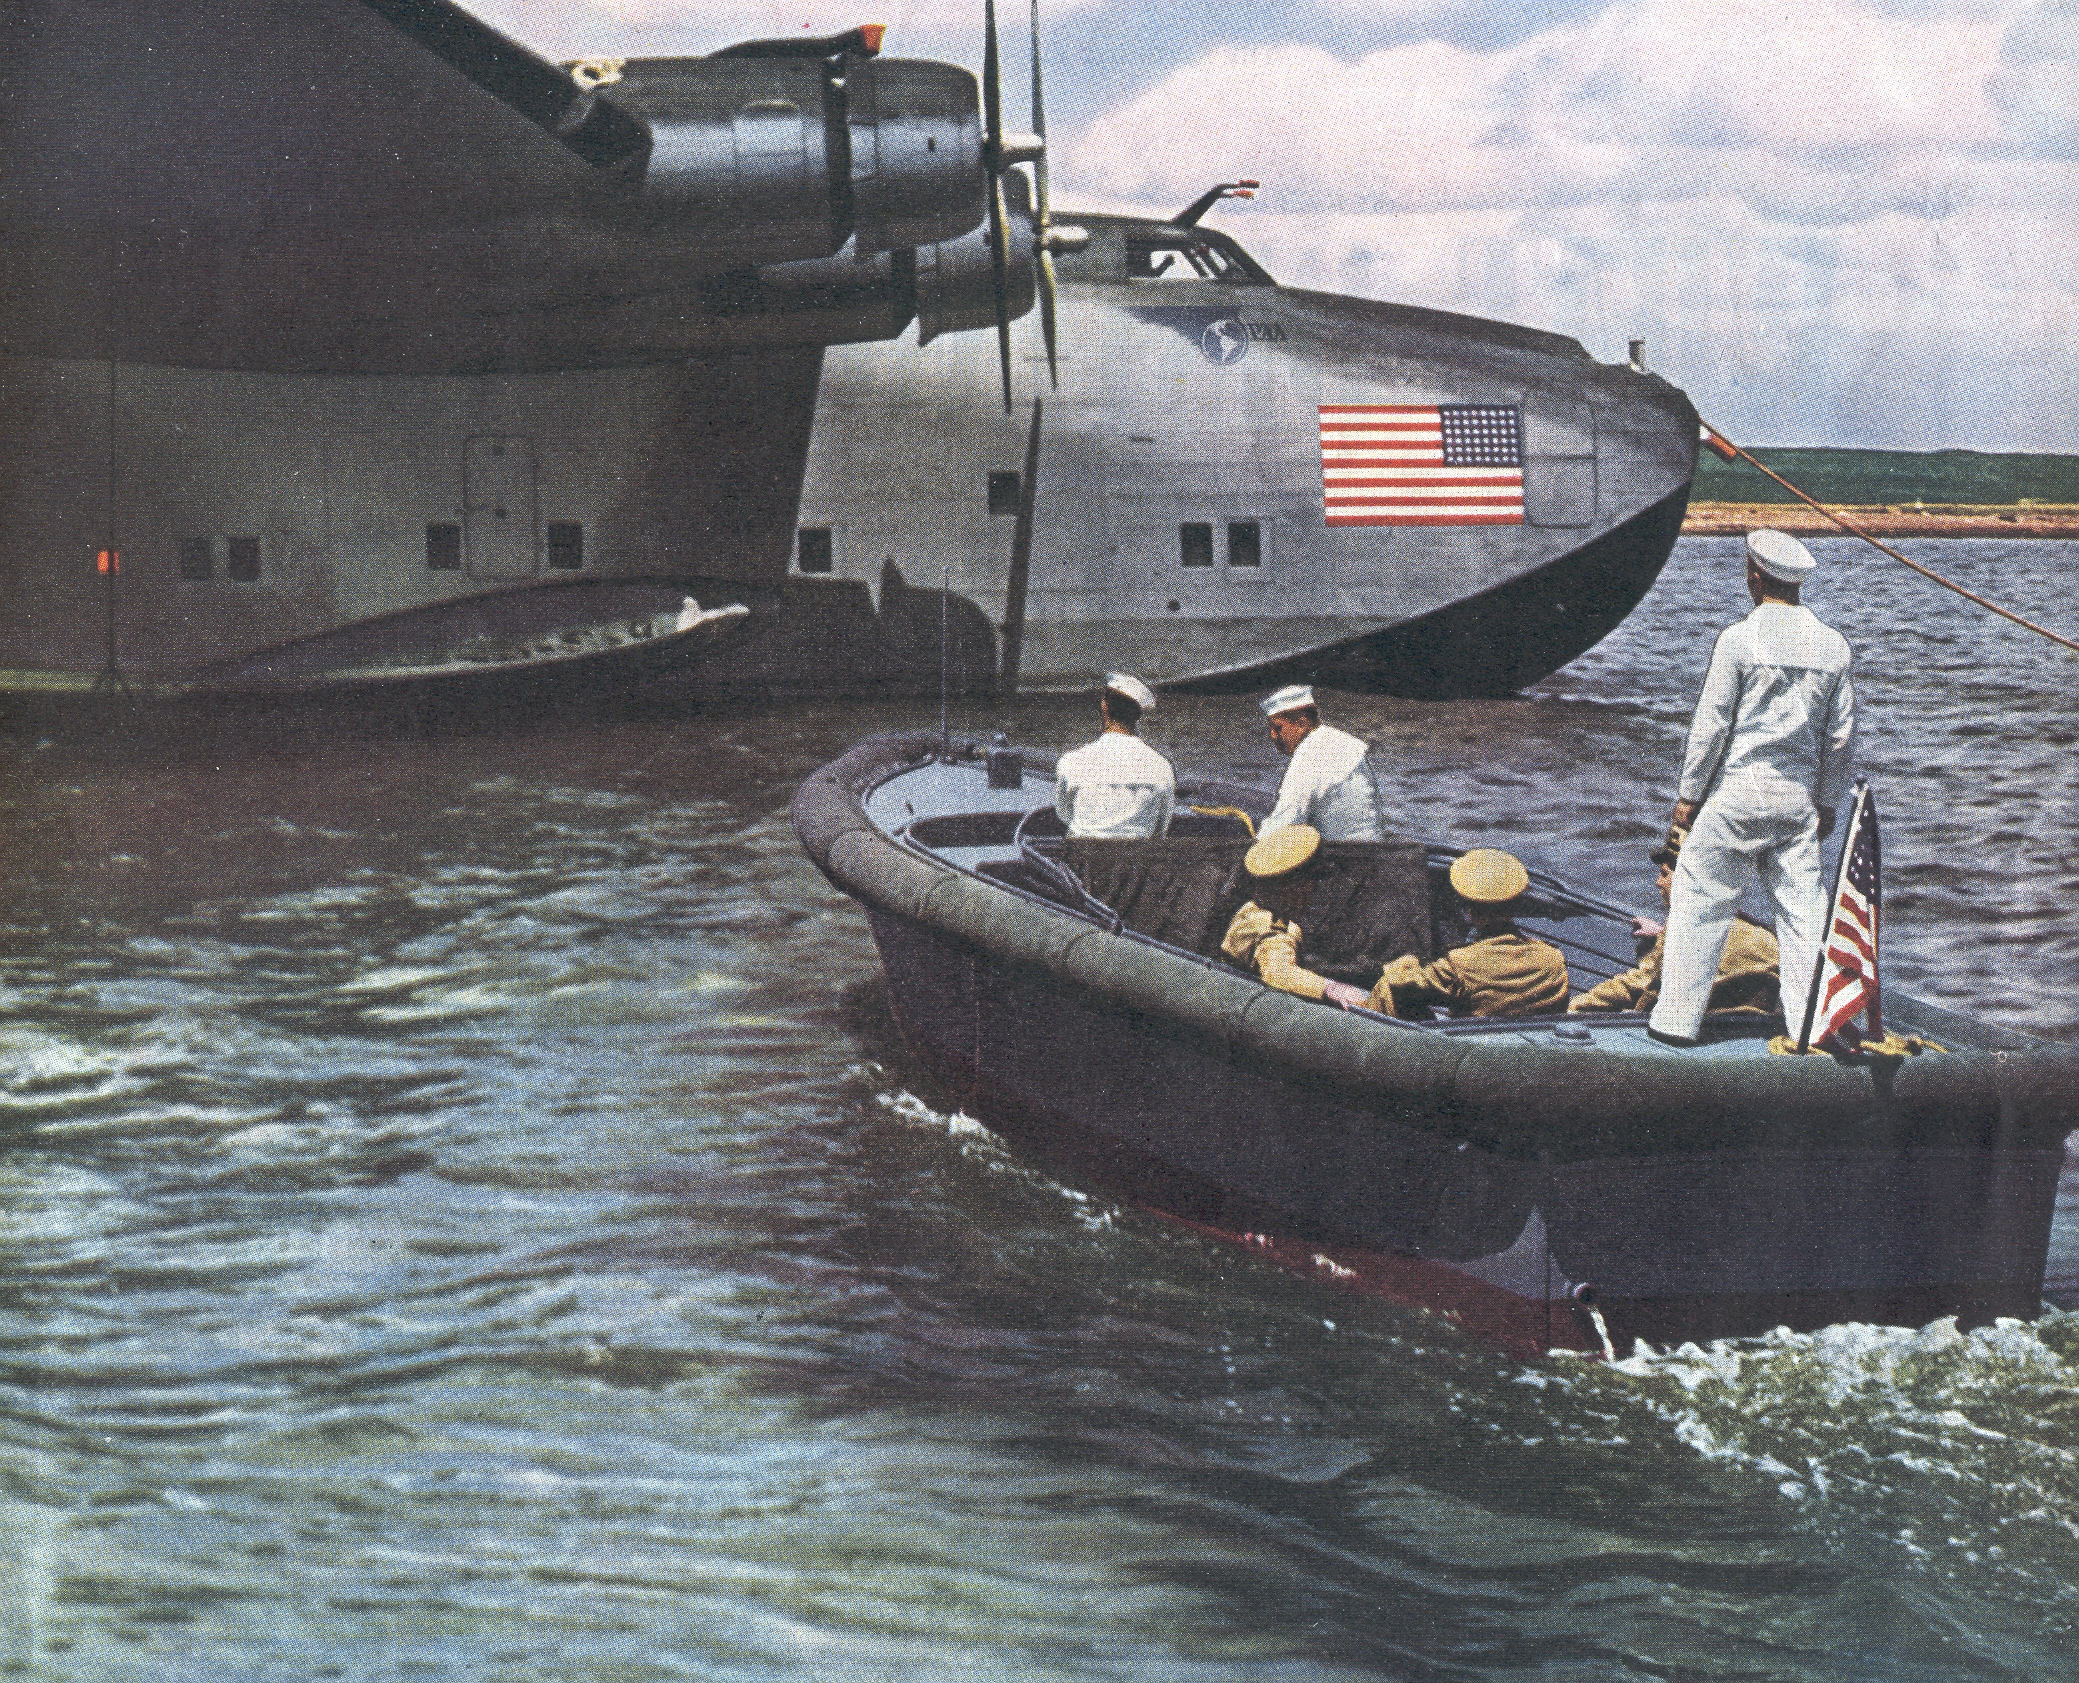 1940s  Navy Launch approaching a moored Boeing B314.  During World War II Pan Am's entire B314 fleet was operated on behalf of the United States Navy moving critical personell and supplies around the world.